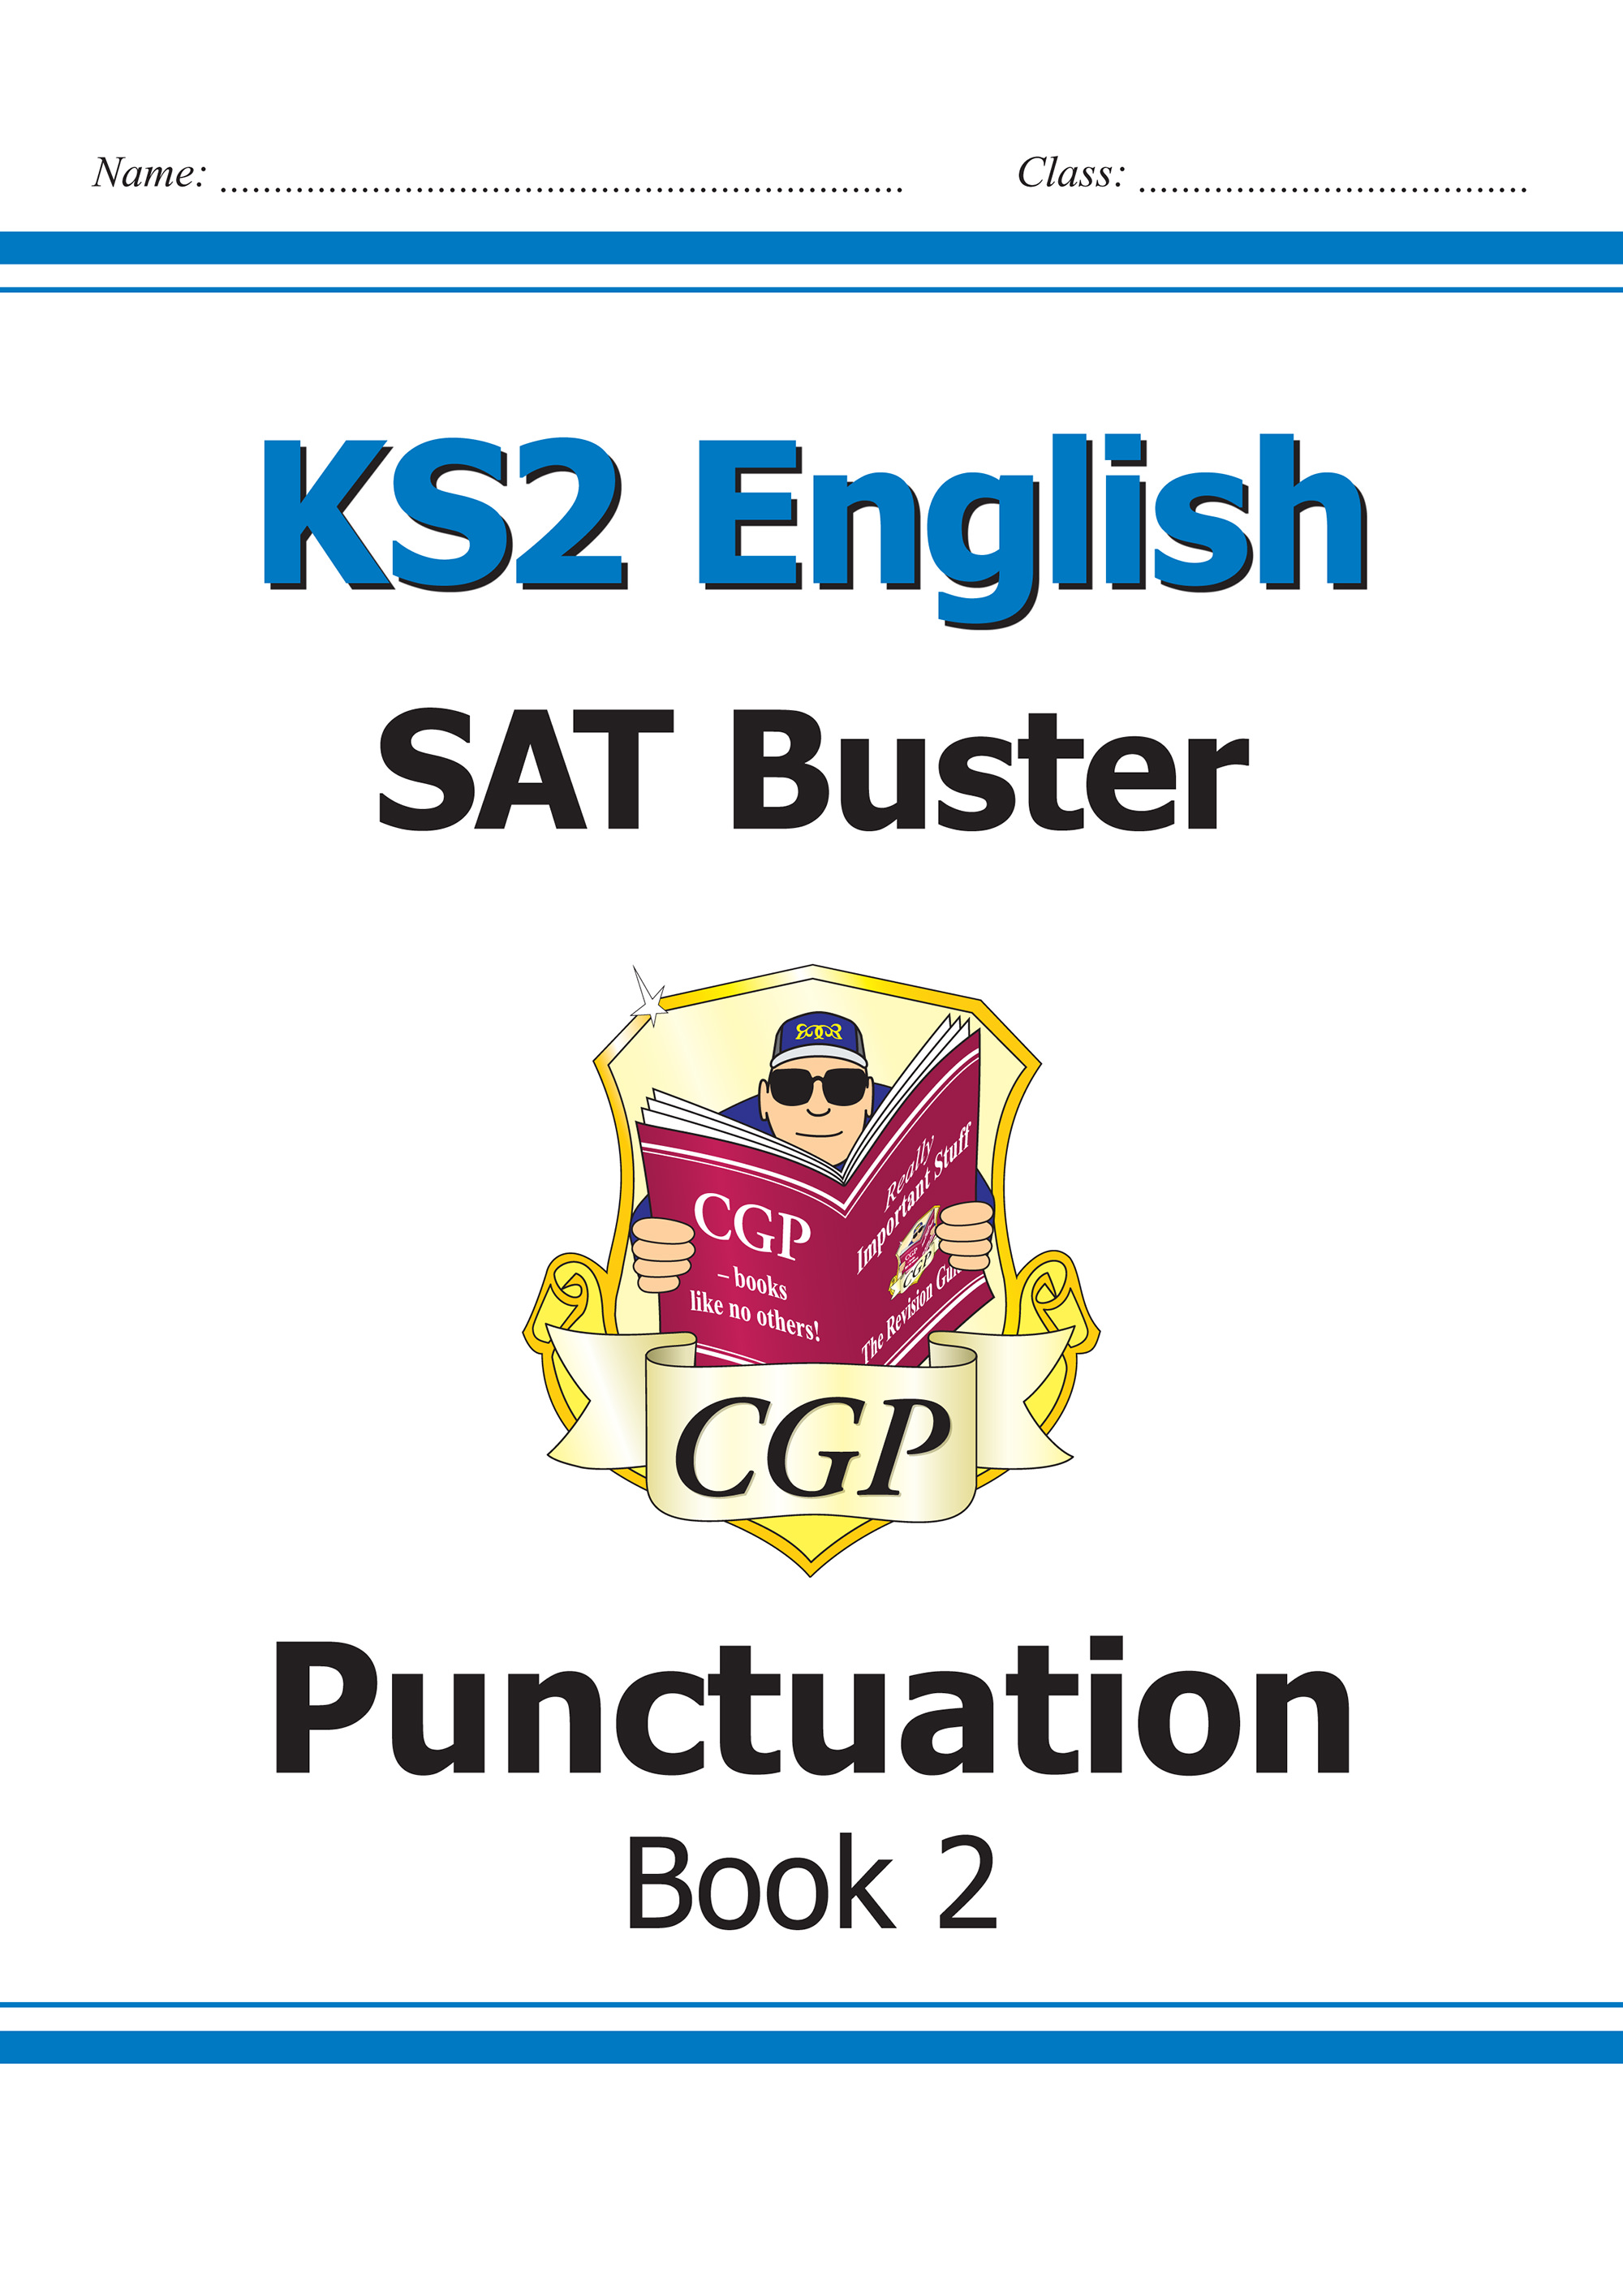 E6P222 - KS2 English SAT Buster - Punctuation Book 2 (for the 2019 tests)